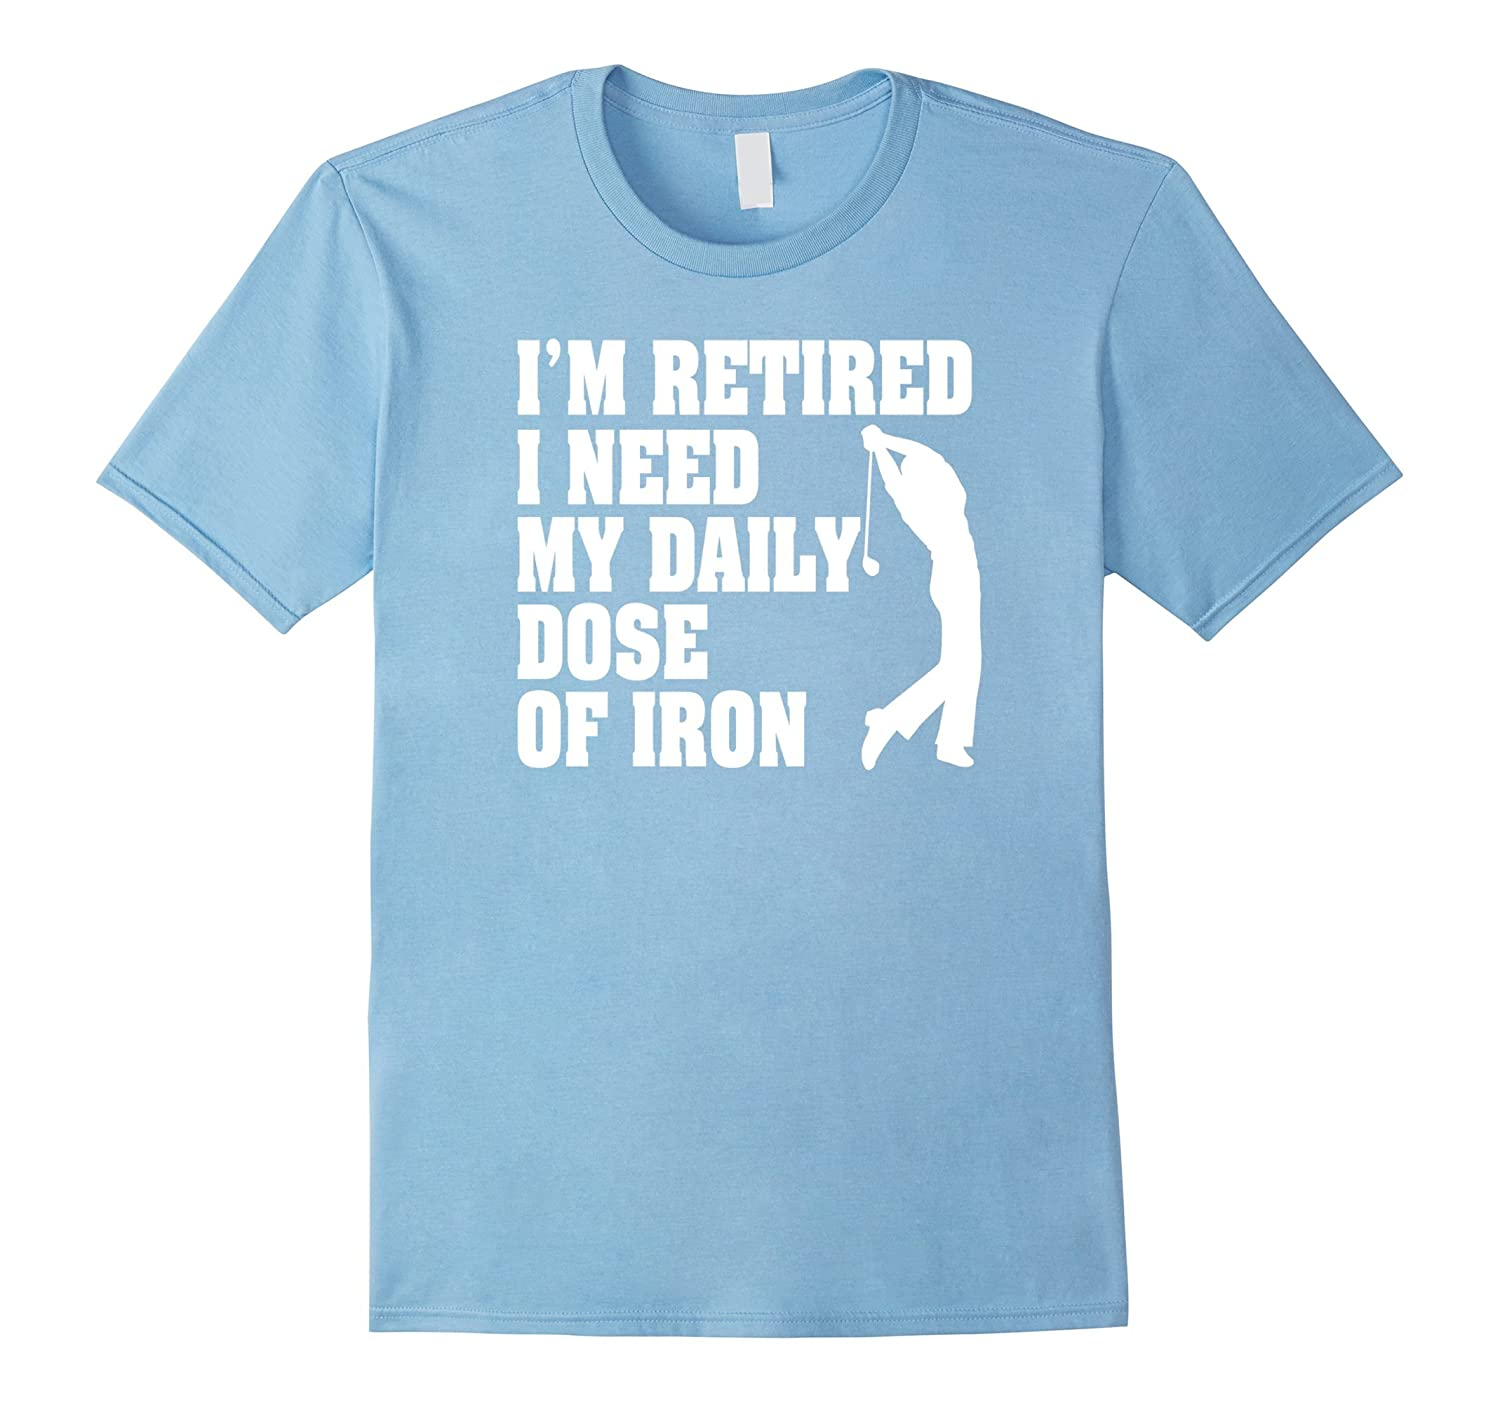 Funny Golf Shirt Im Retired I Need My Daily Dose Of Iron-Vaci